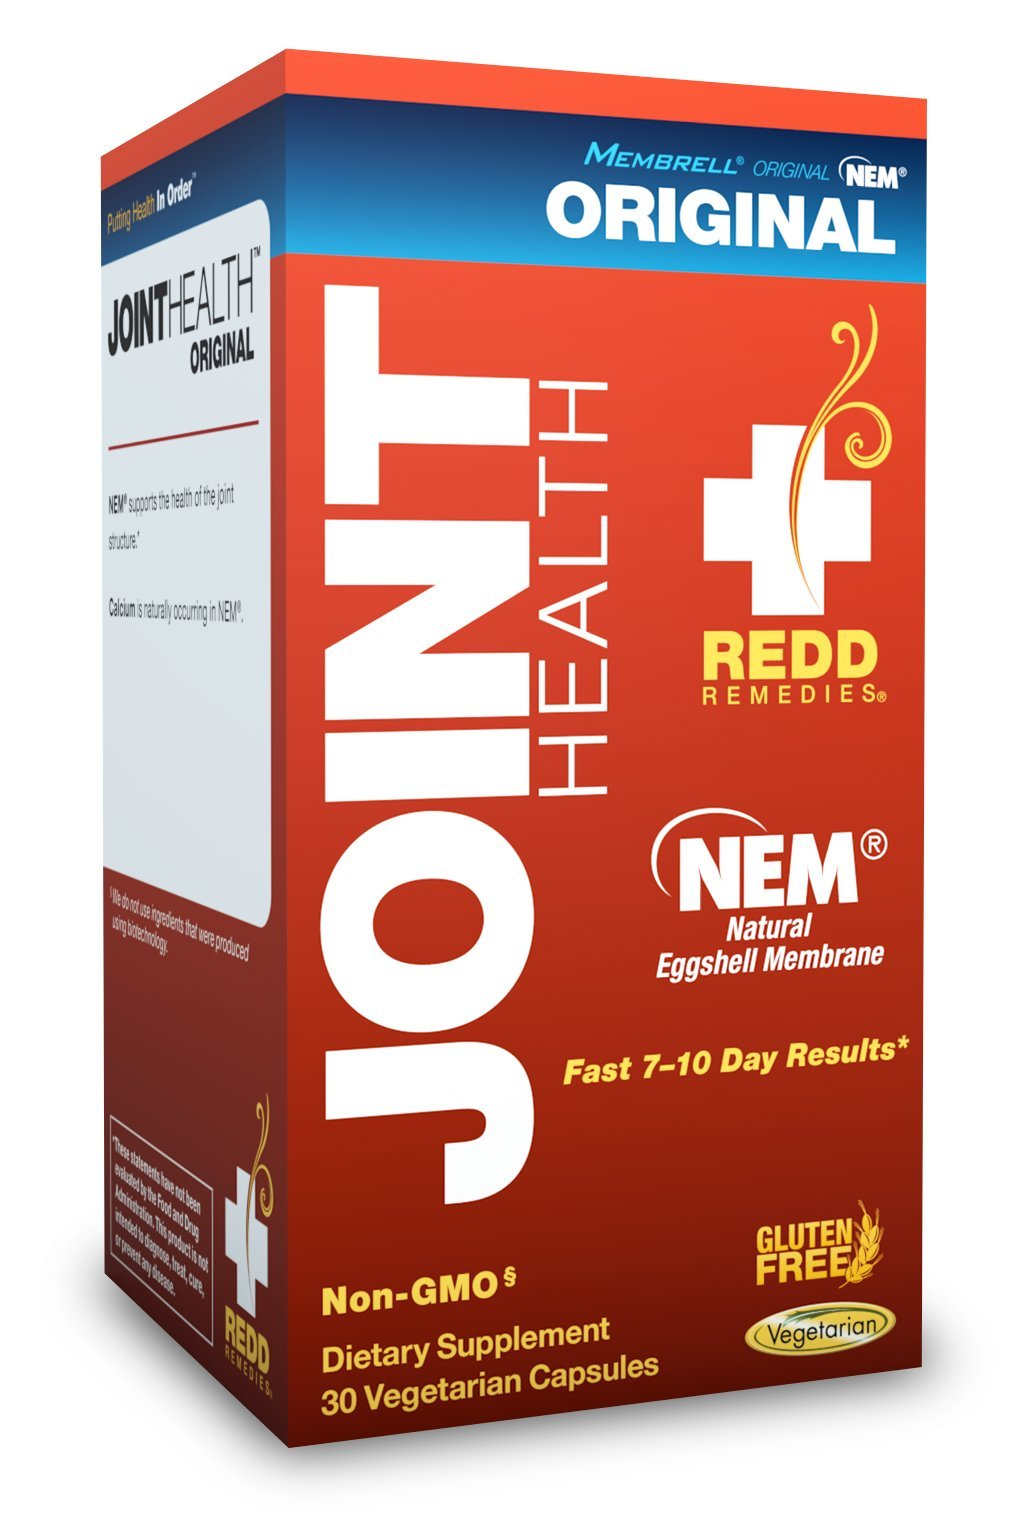 Redd Remedies - Joint Health Original, Helps Strengthen Connective Tissue and Cartilage, 30 Count